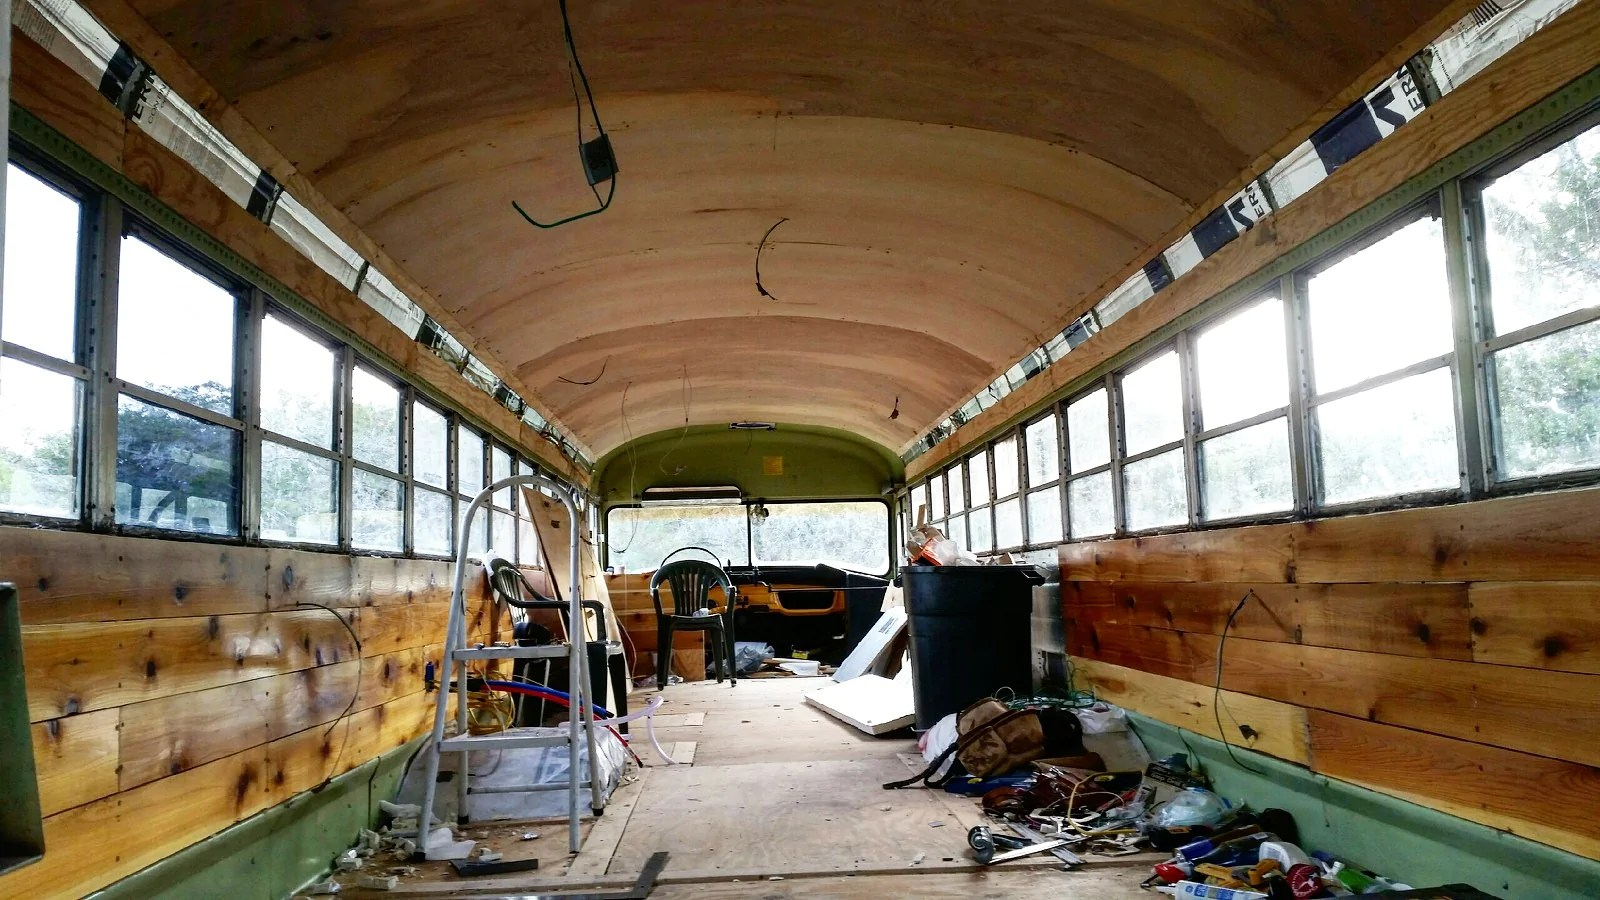 School Buses Conversion - Year of Clean Water